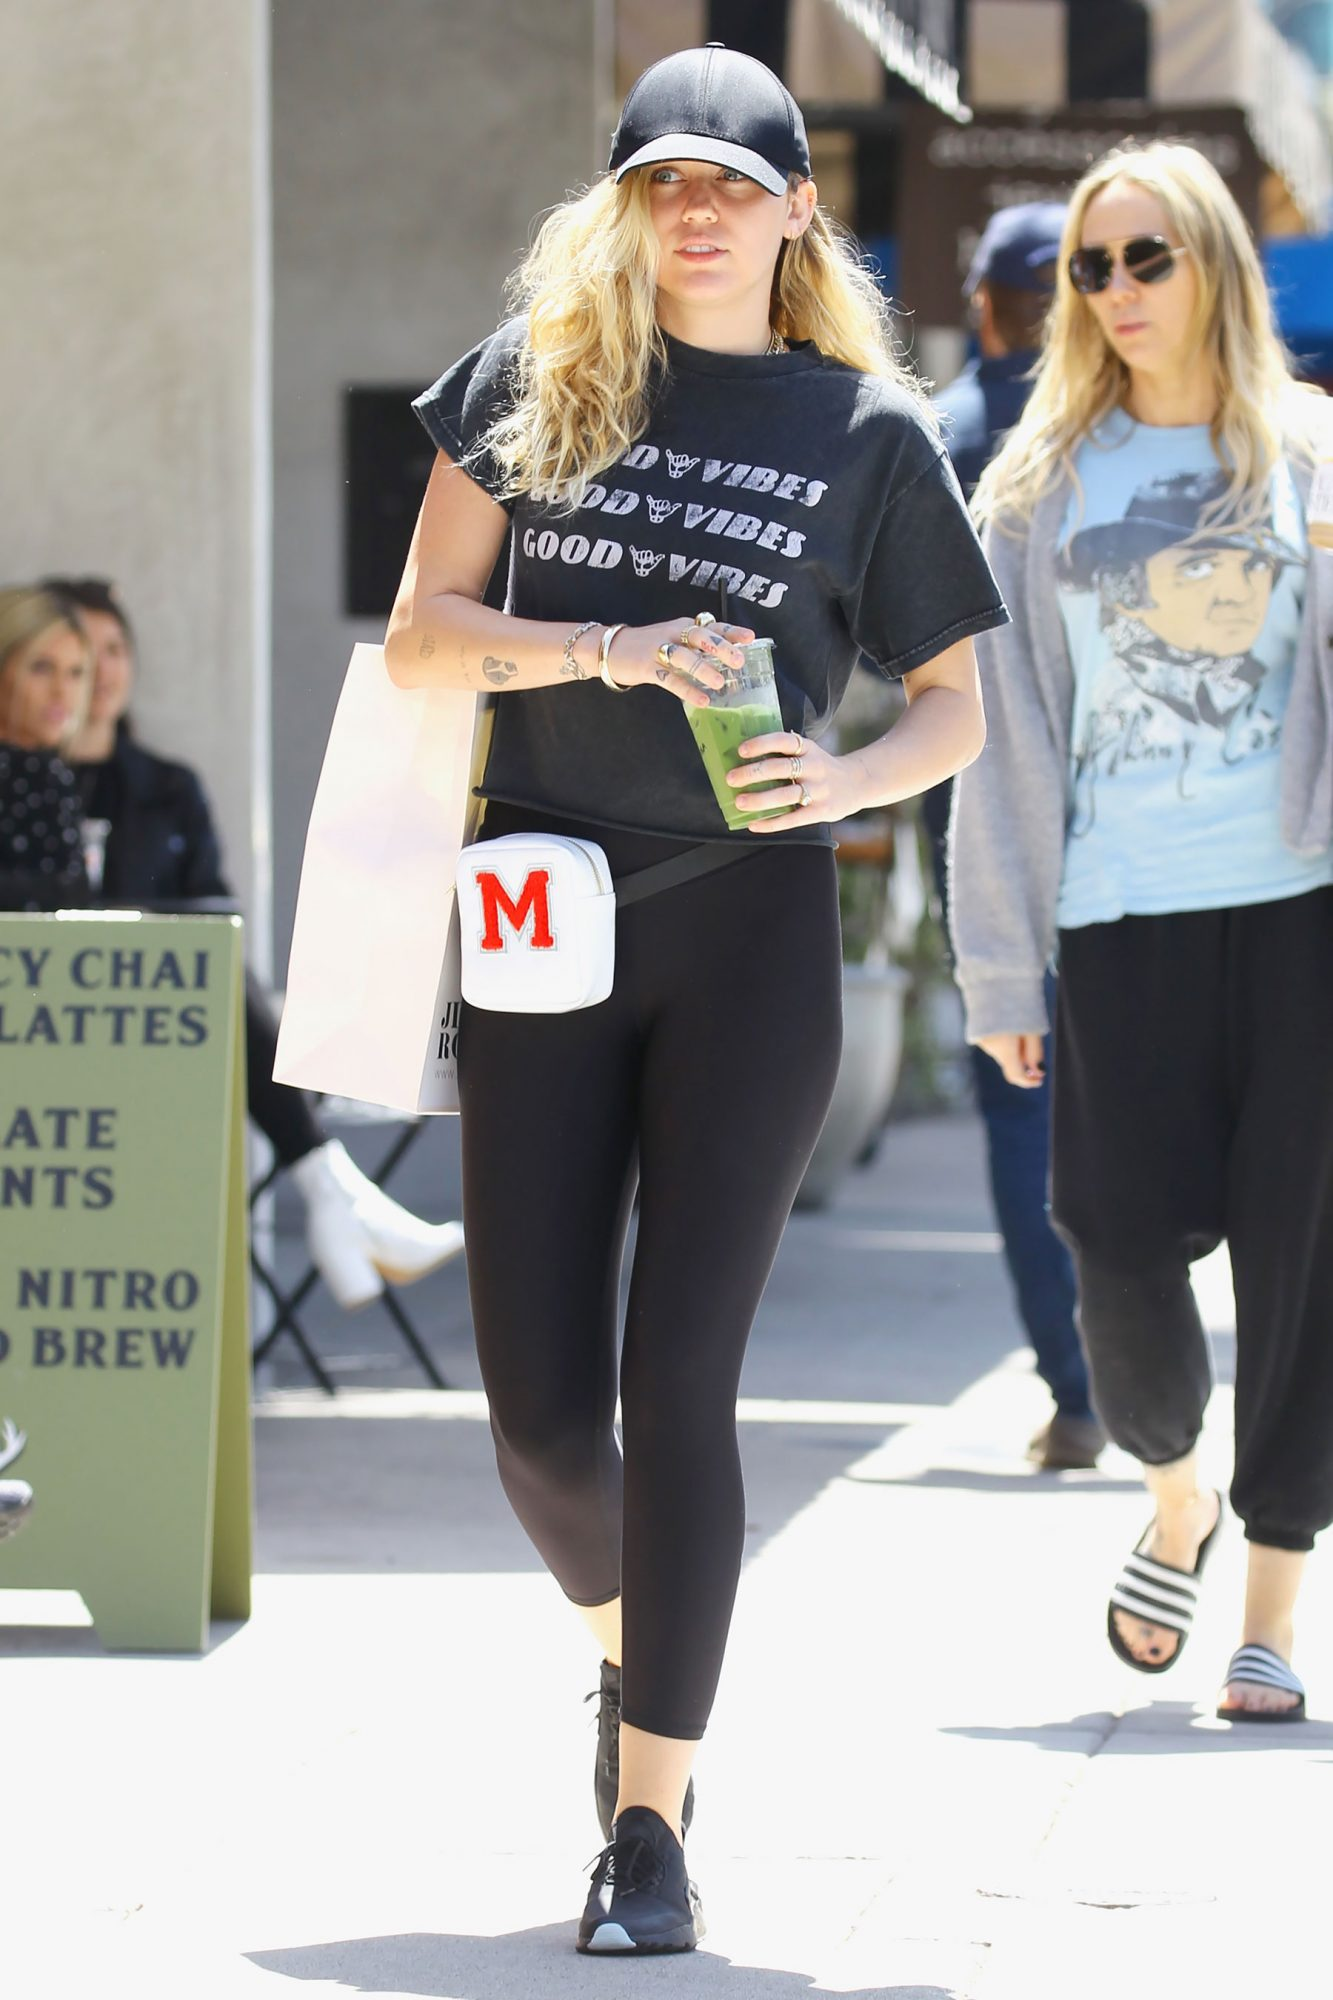 Miley Cyrus was spotted shopping with her mom in Studio City